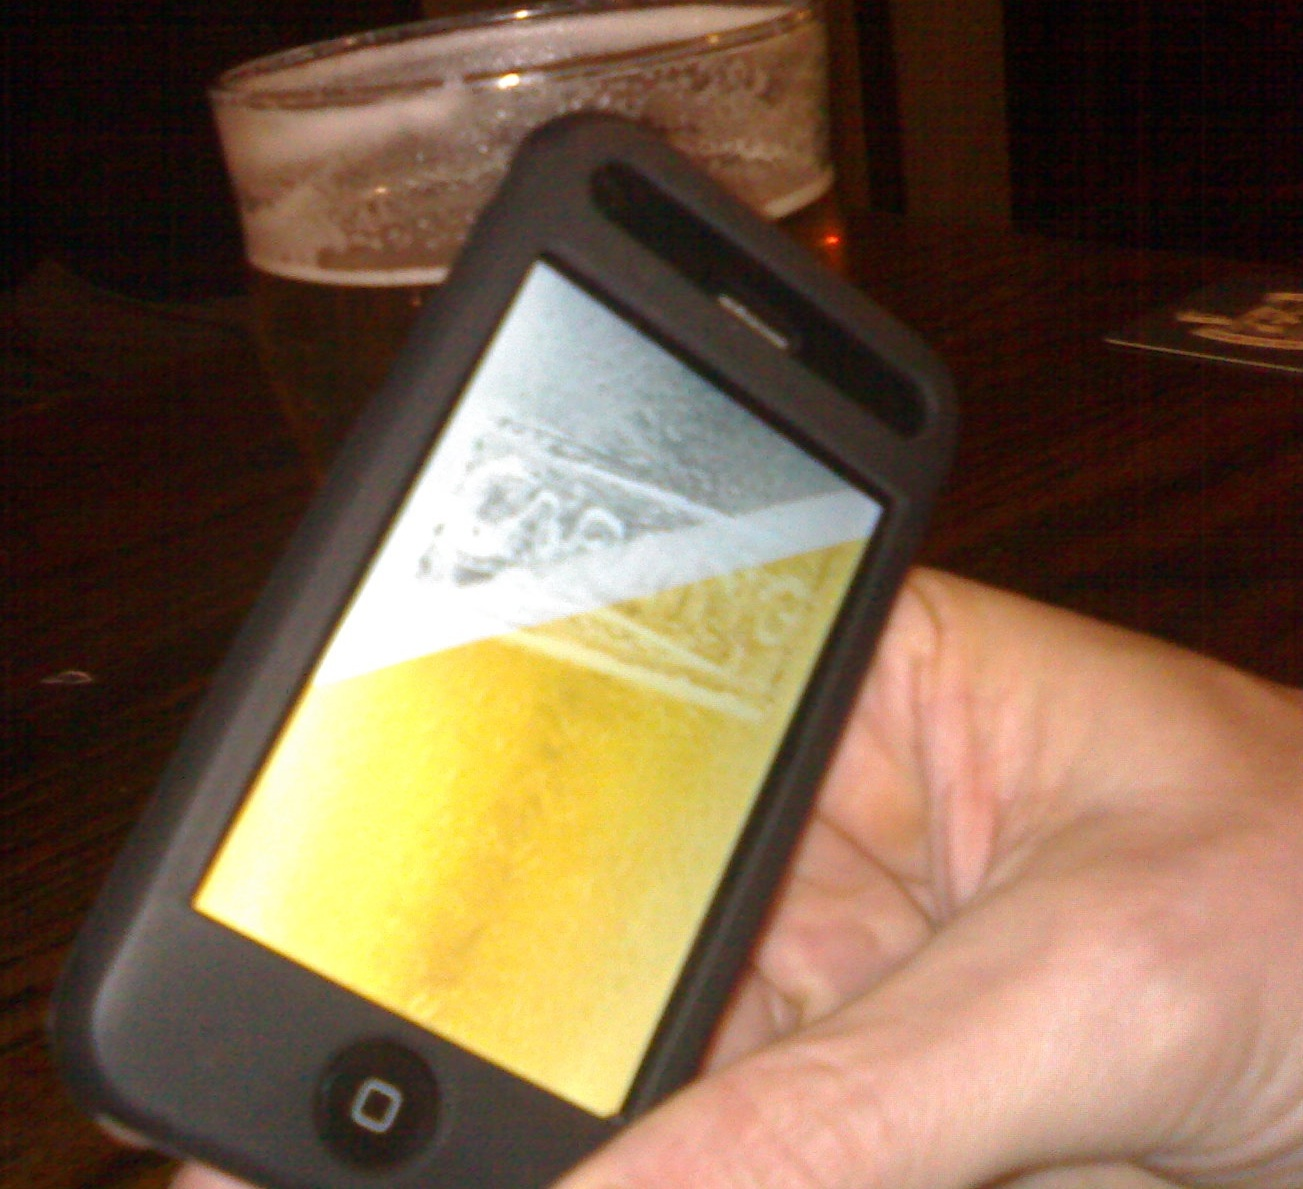 Tipping the iPhone pint